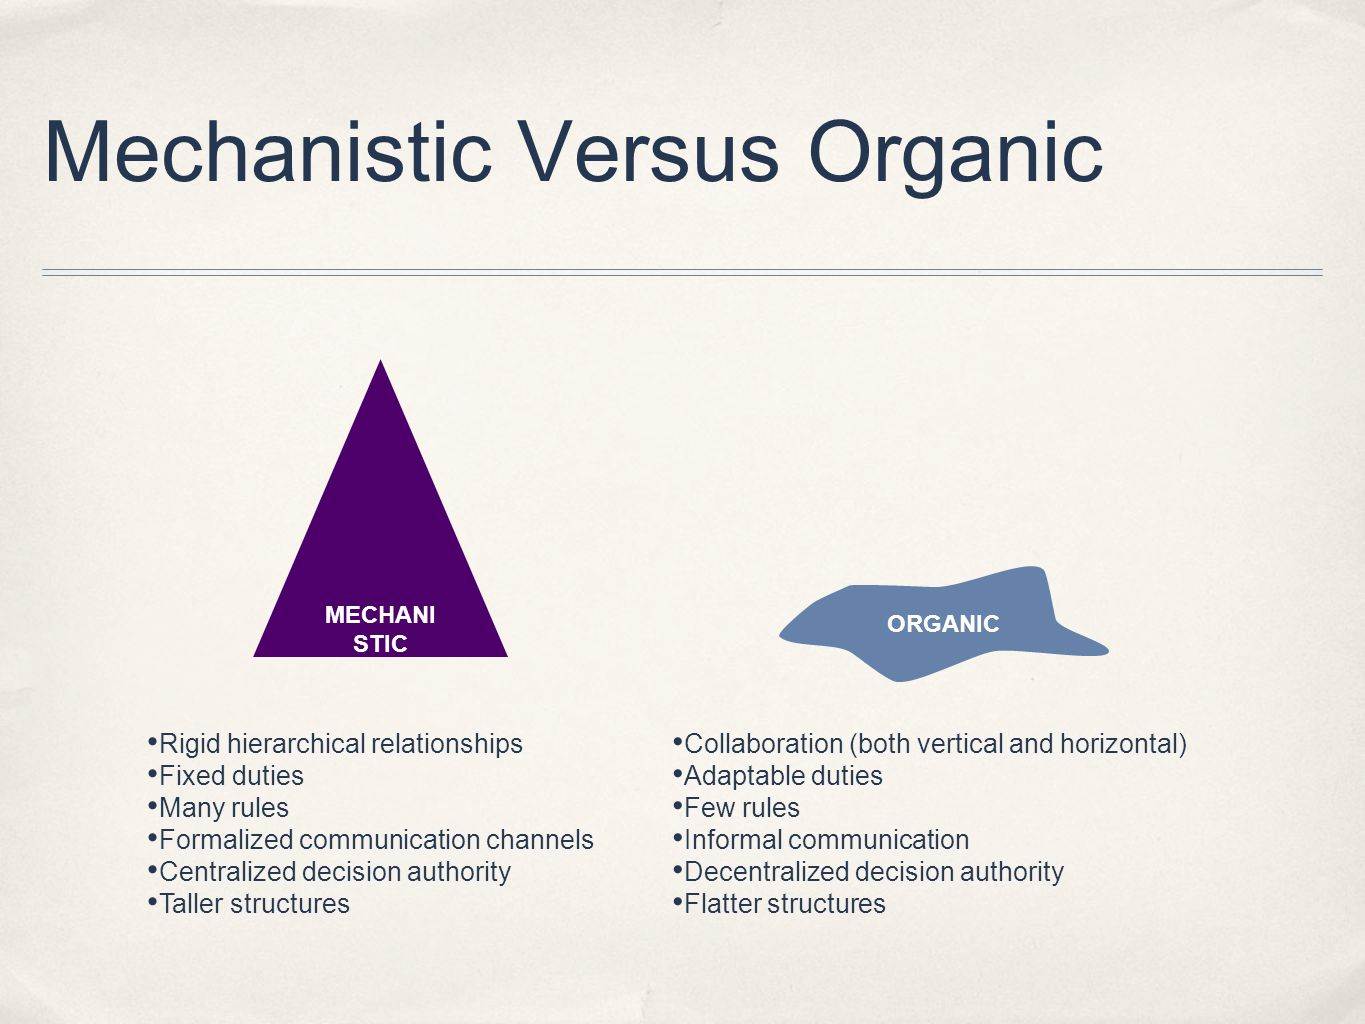 Mechanistic Versus Organic MECHANI STIC ORGANIC Rigid hierarchical relationships Fixed duties Many rules Formalized communication channels Centralized